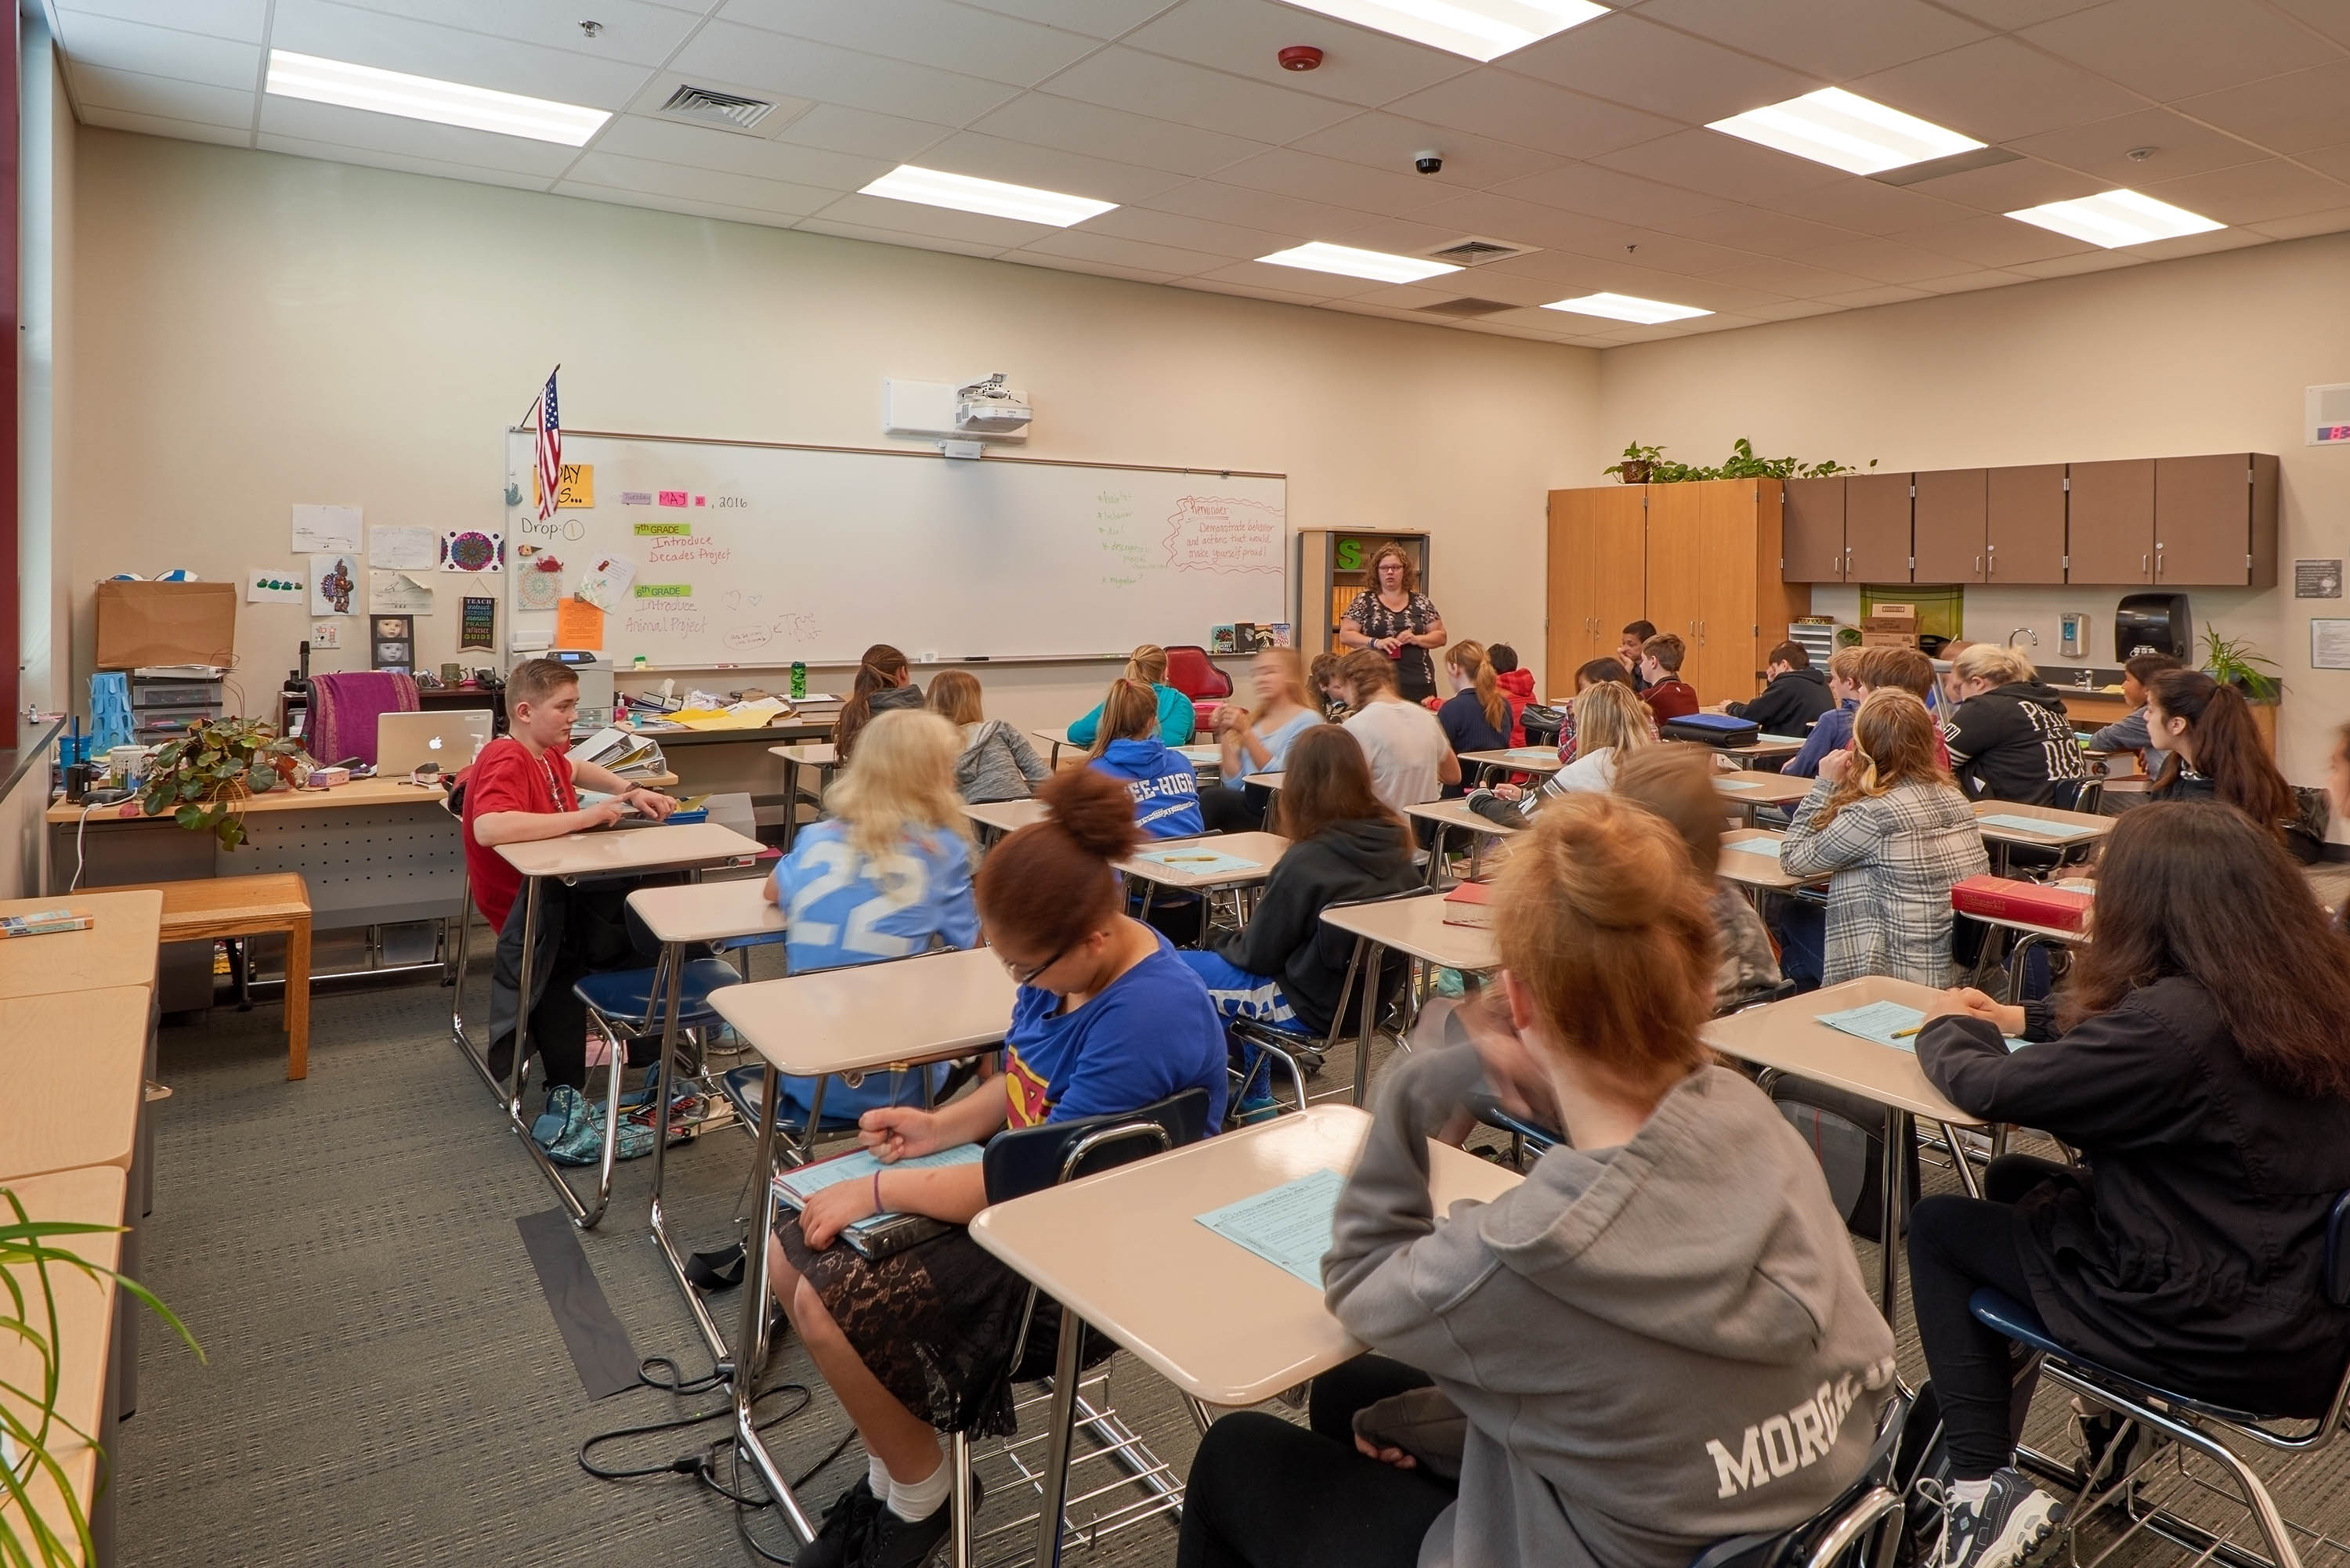 Students in a classroom at their desks listening to a teacher.